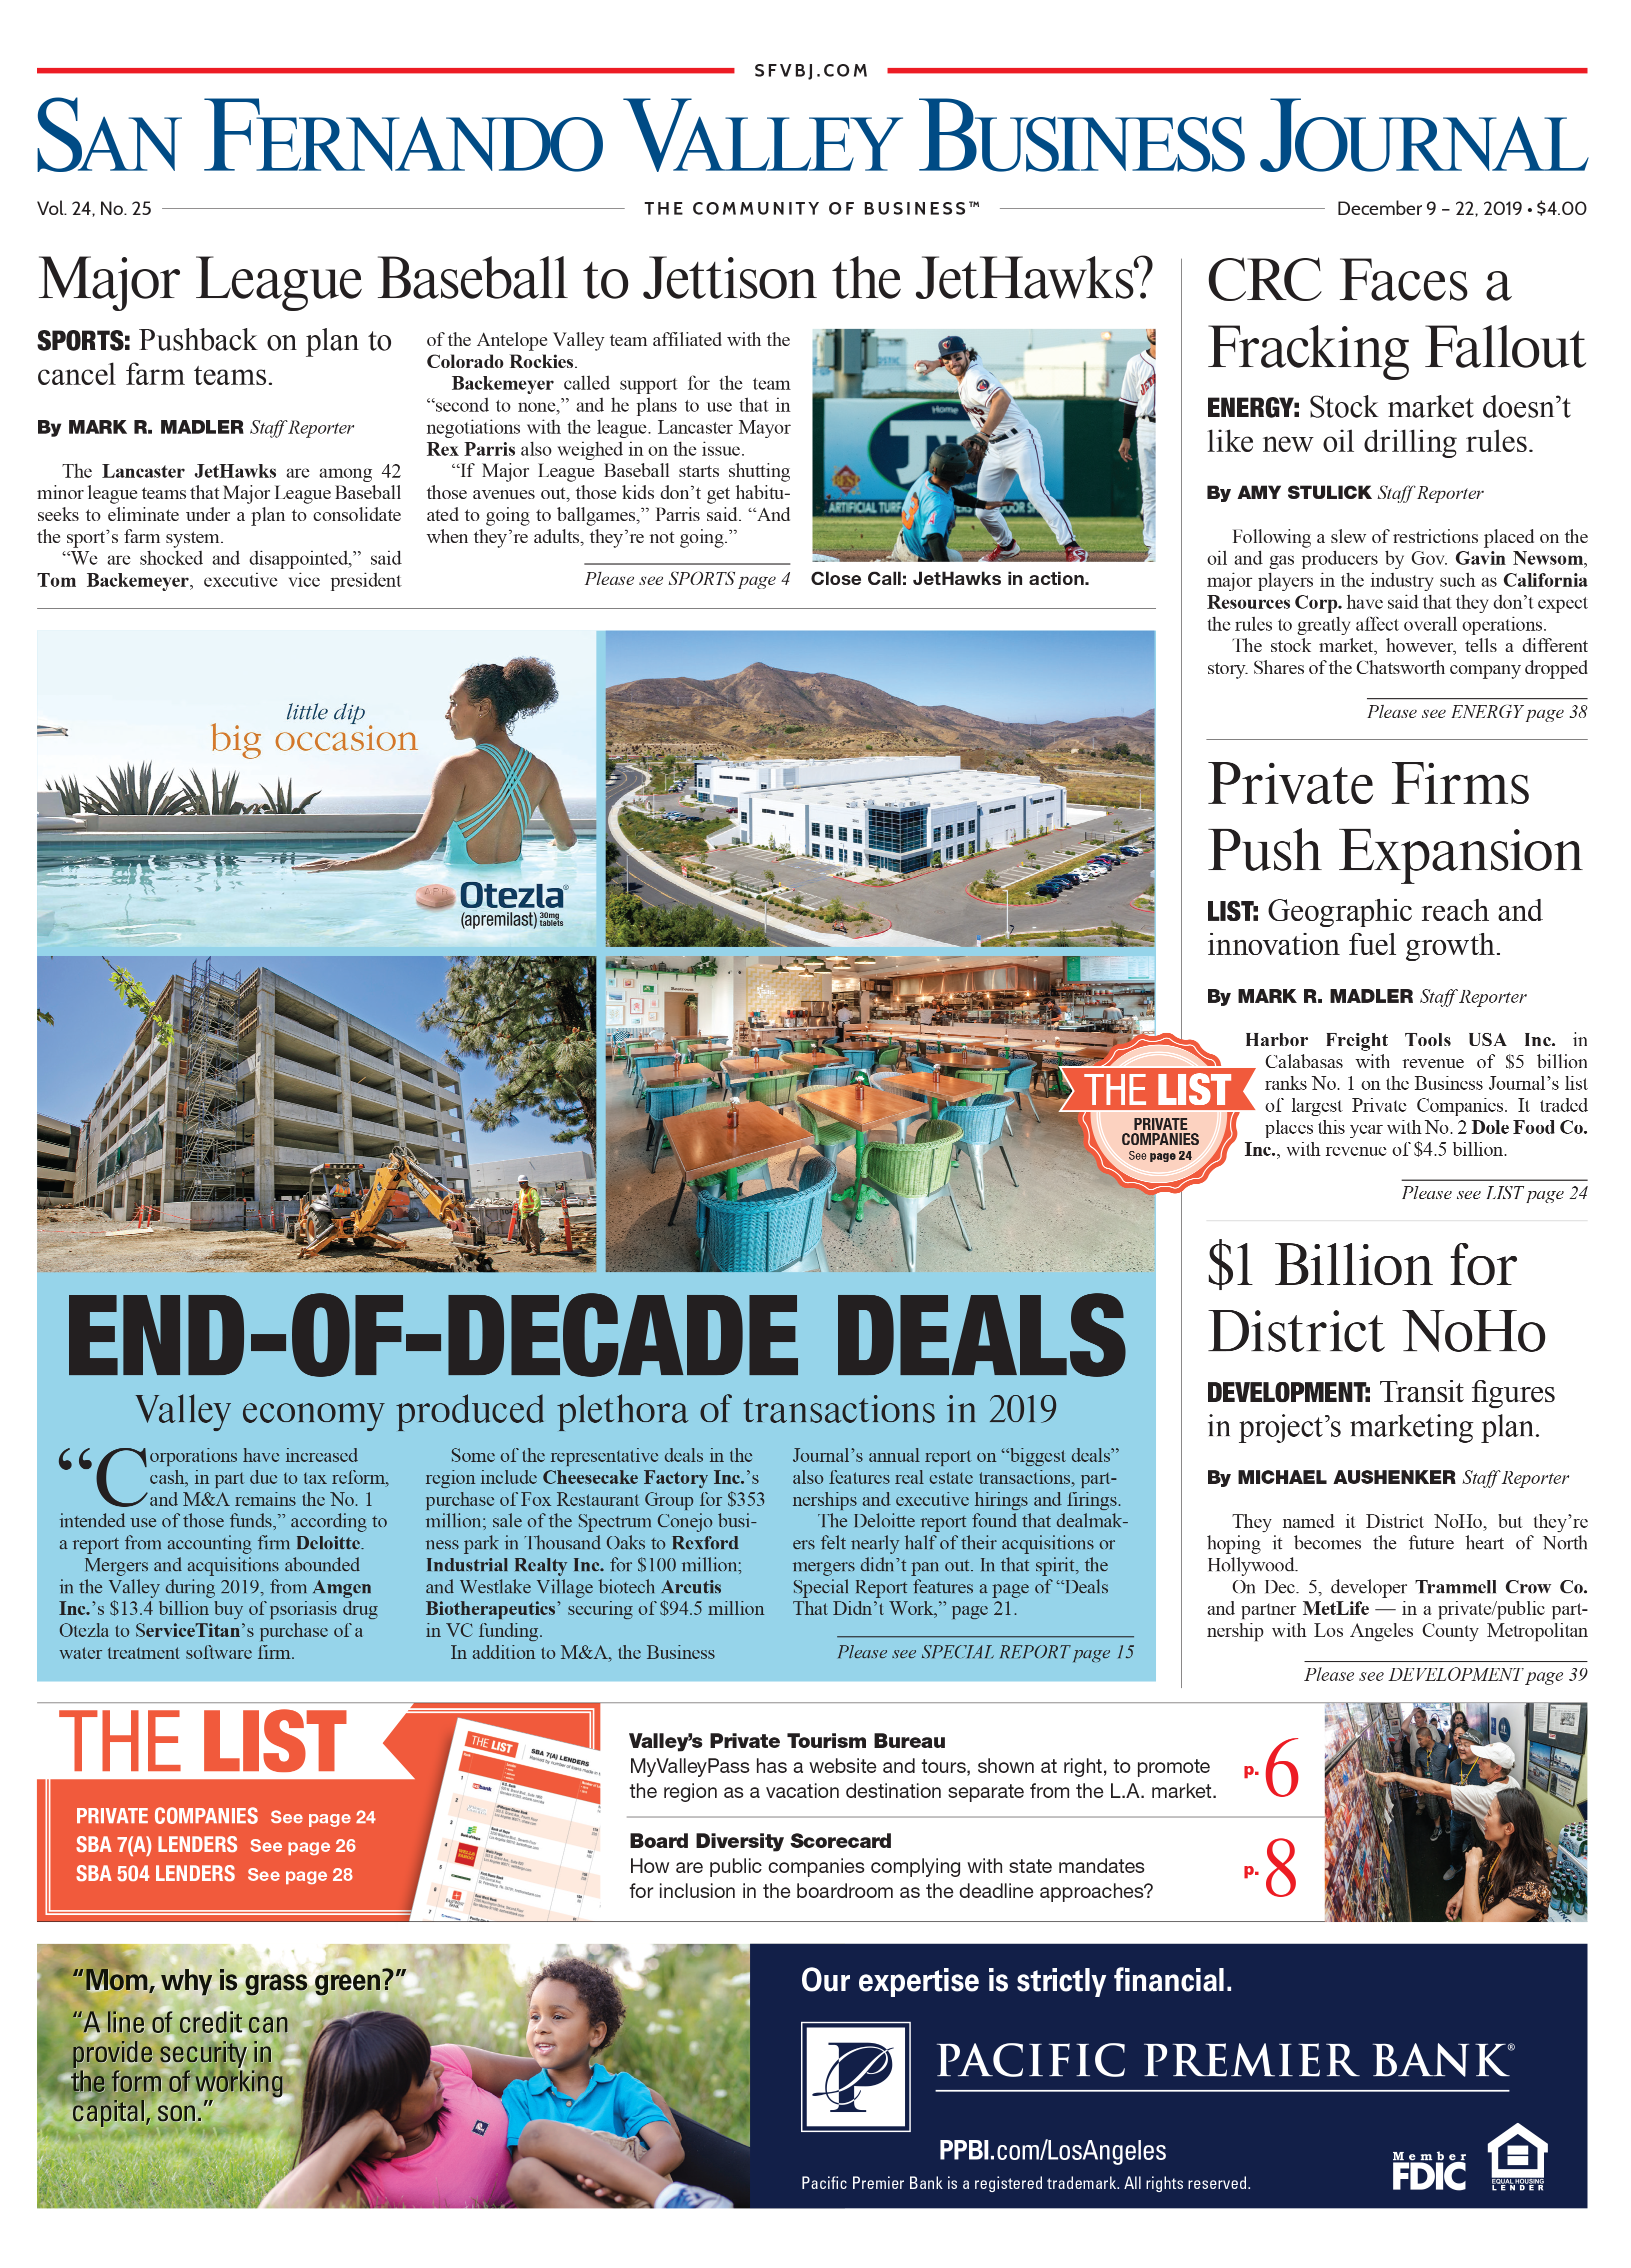 San Fernando Valley Business Journal Digital Edition